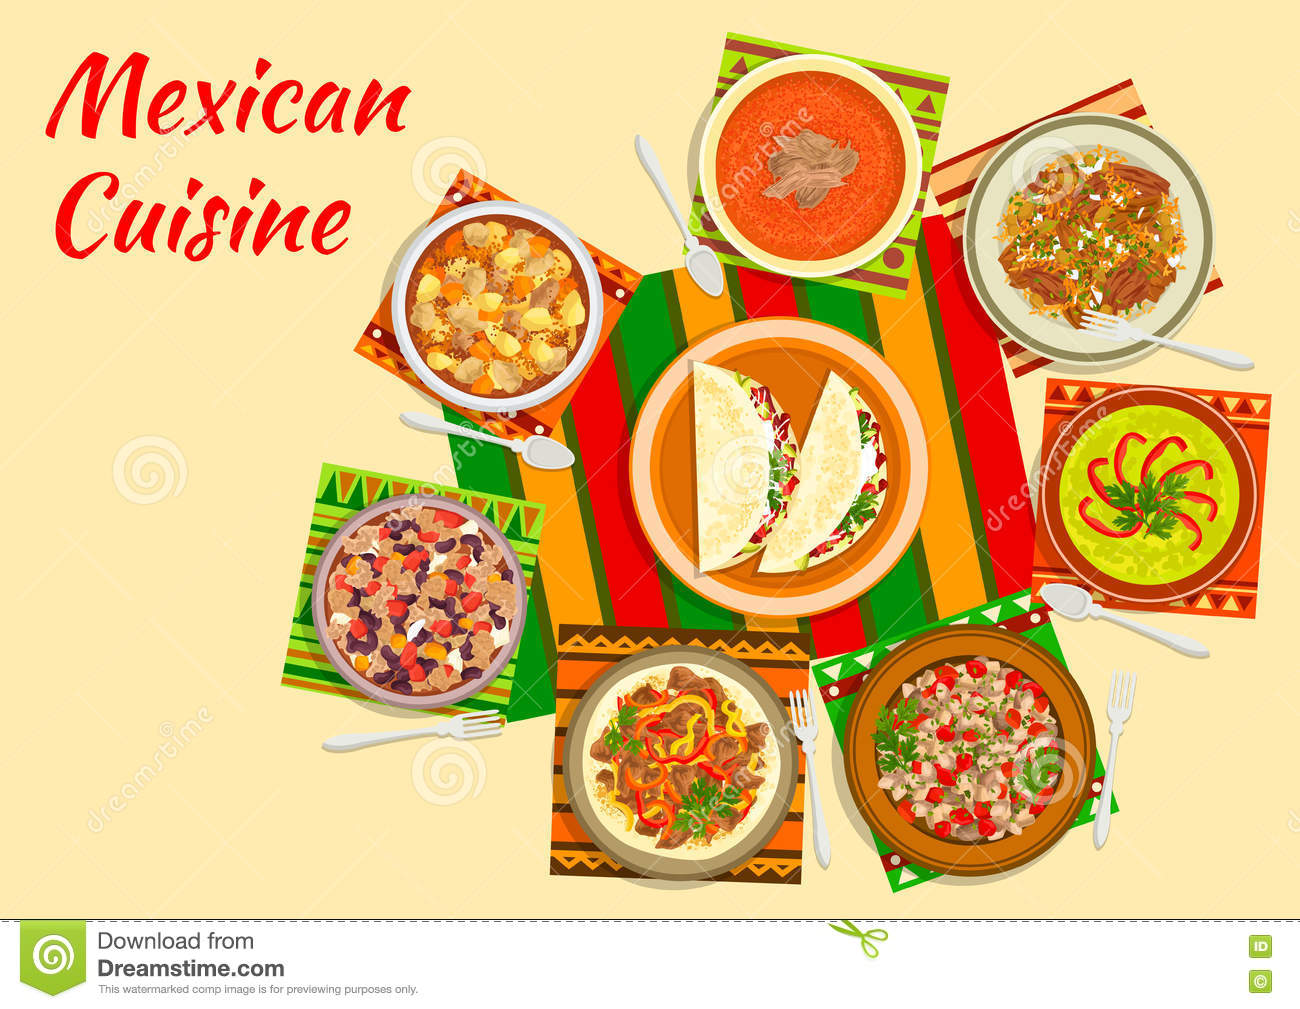 Restaurant Food Prices In Mexico